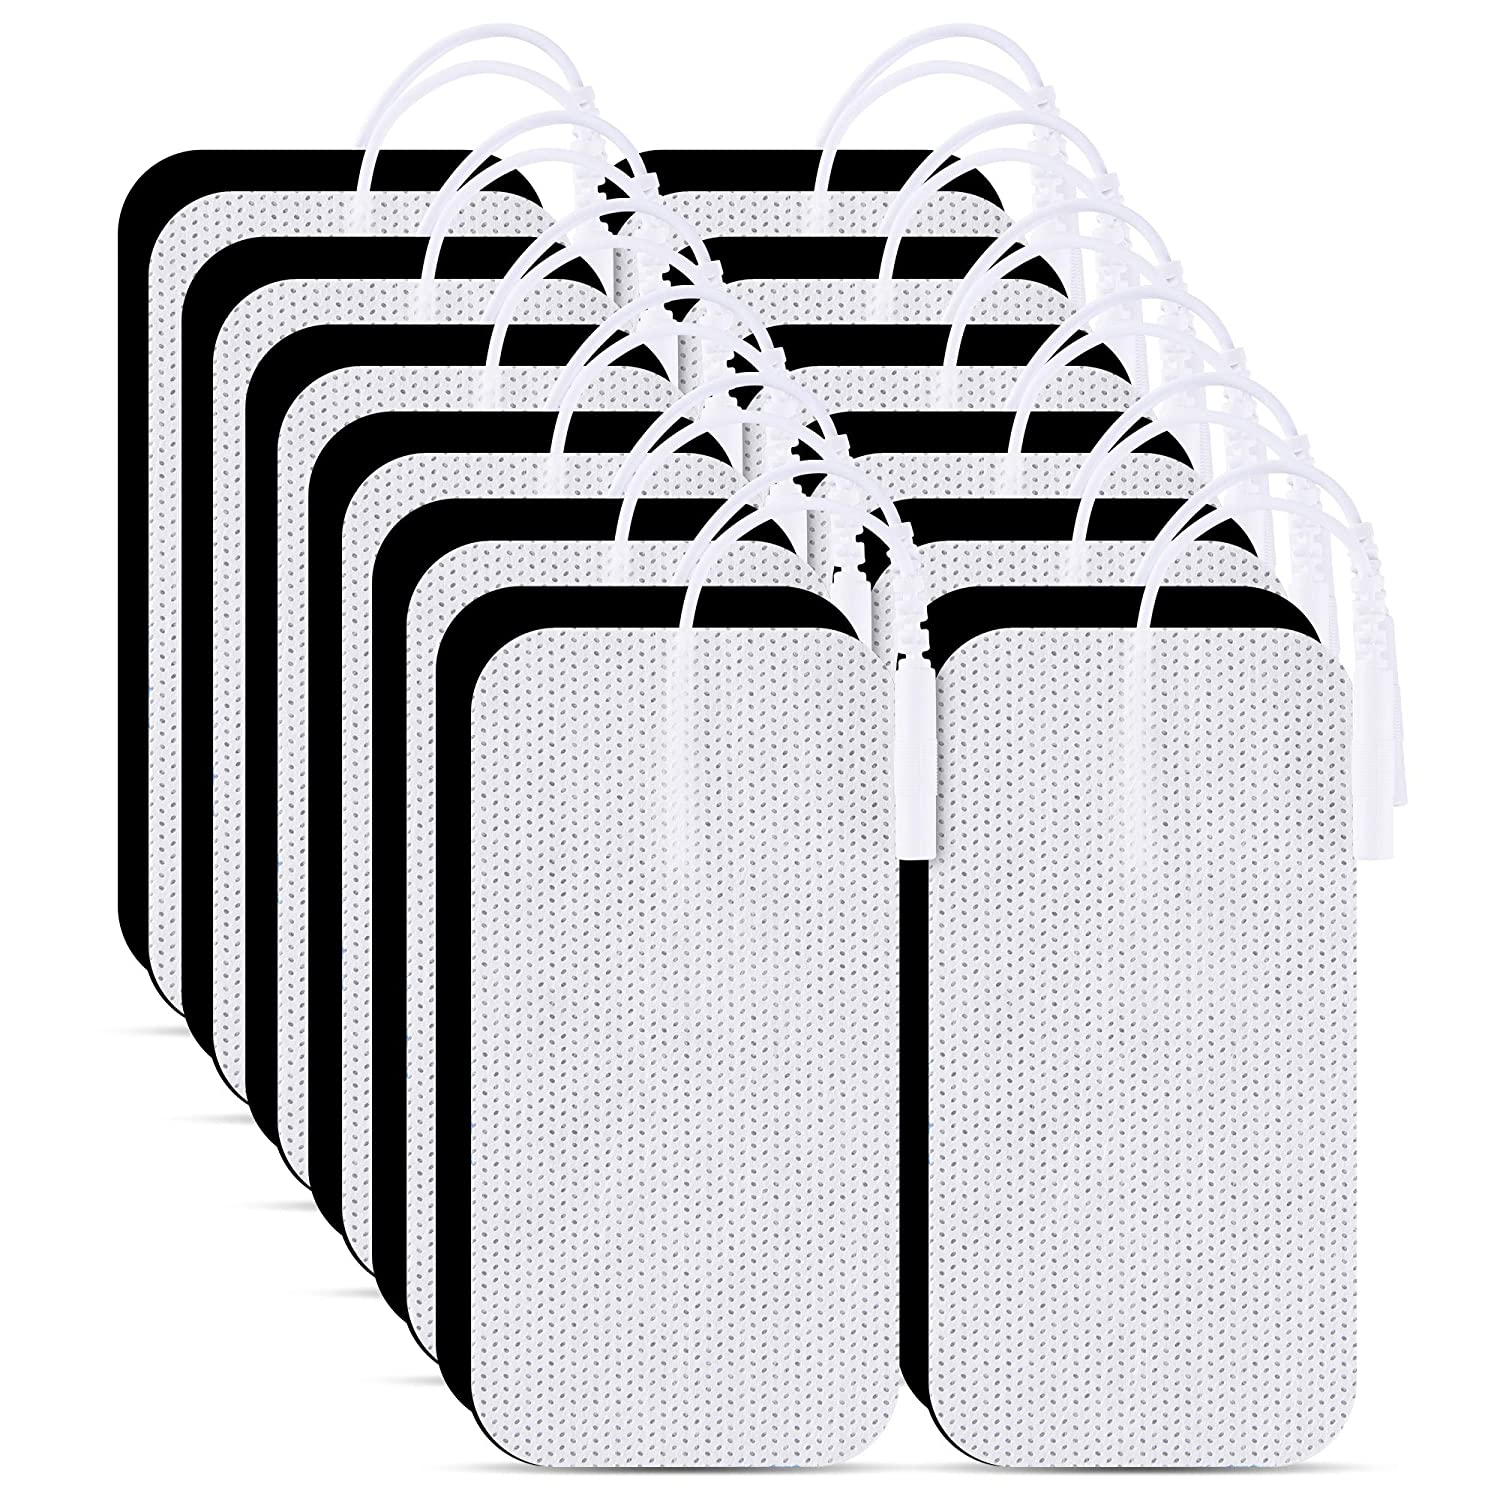 Discount mail order Max 87% OFF LYINIE TENS Unit Pads Electrodes 2